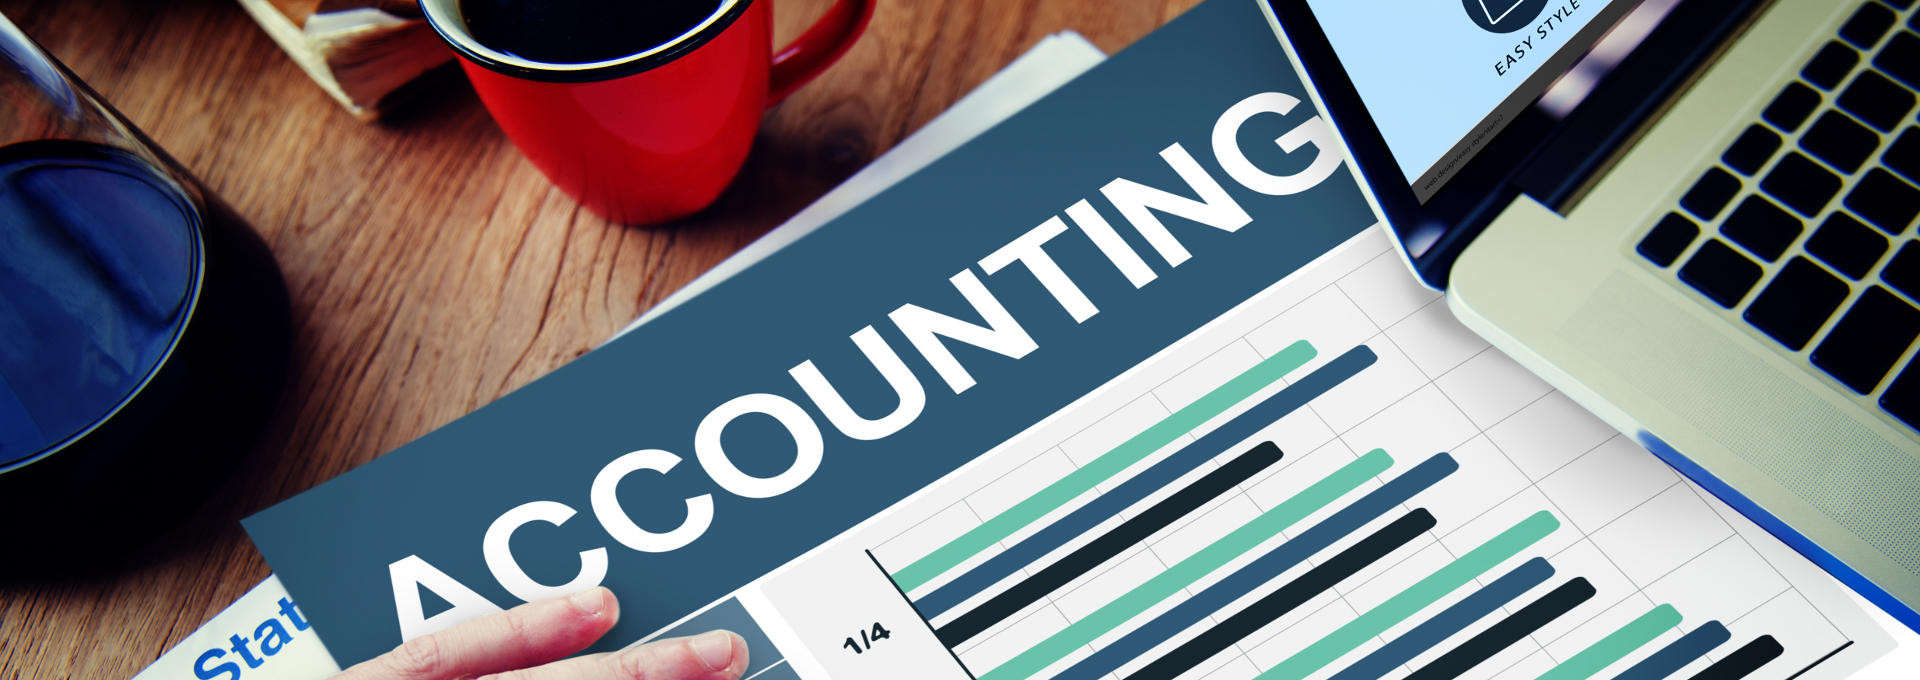 banneraccounting-bookkeeping-services.jp